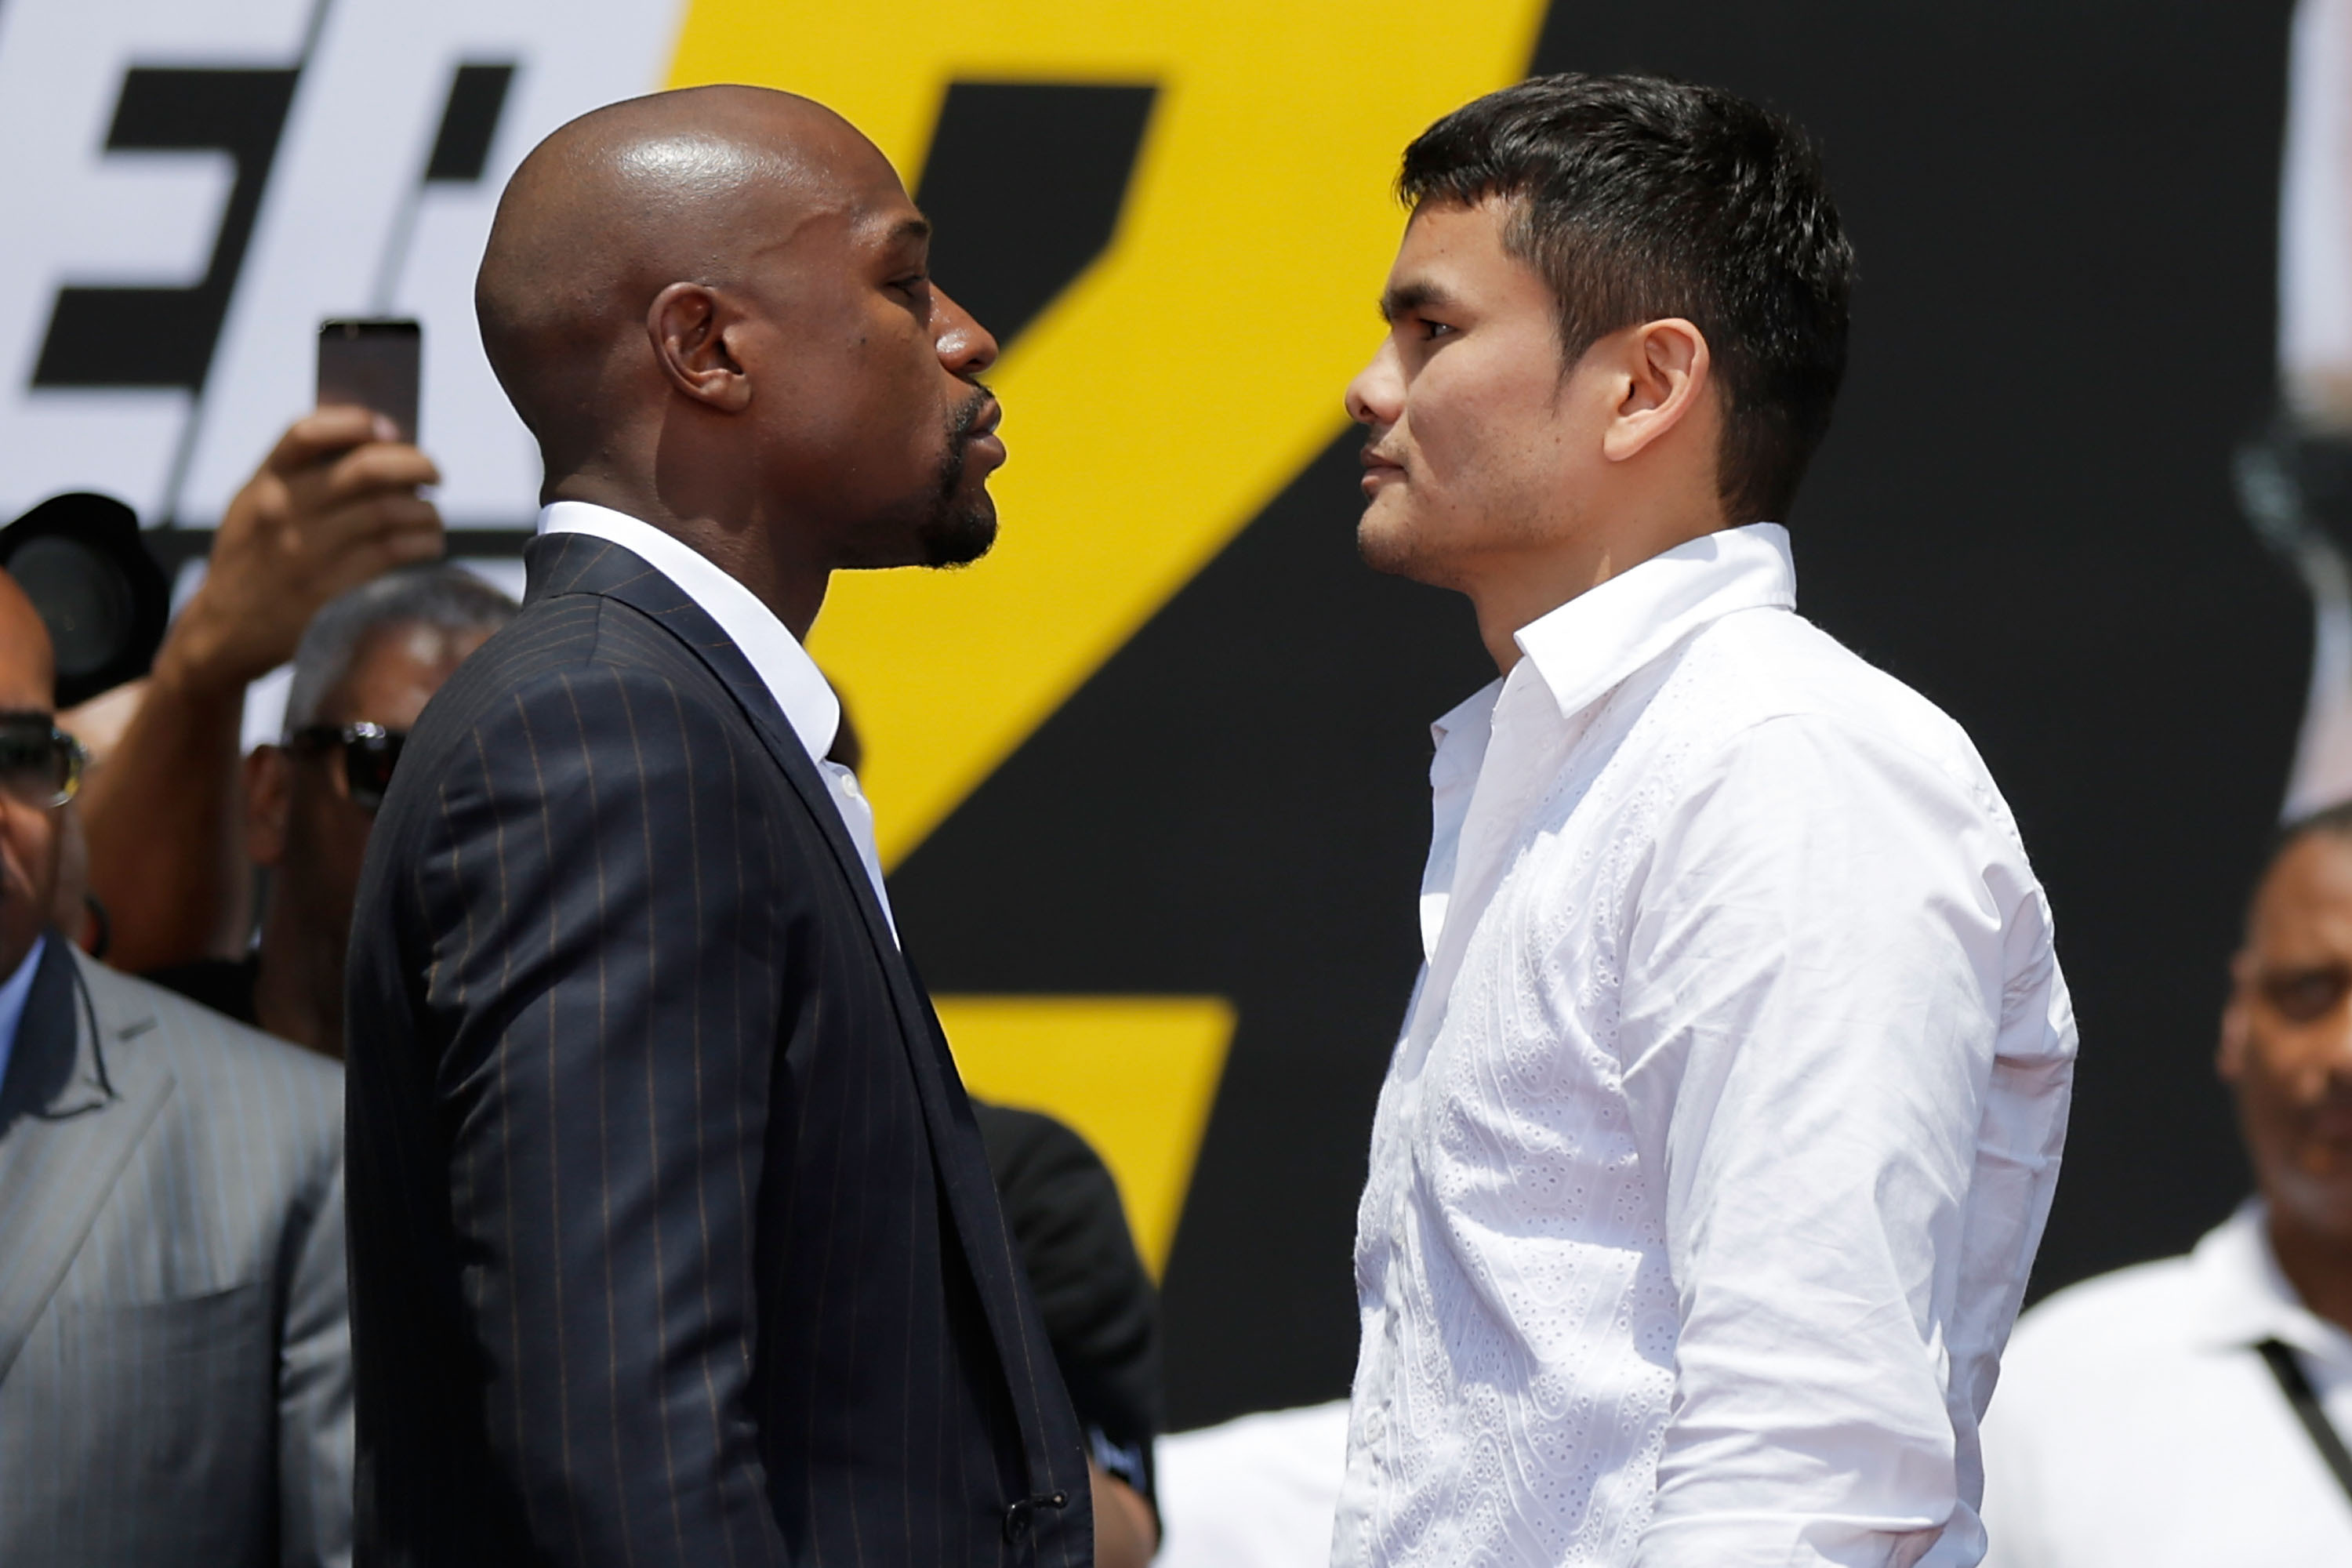 Betting odds mayweather maidana 2 how to bet on kentucky derby at home